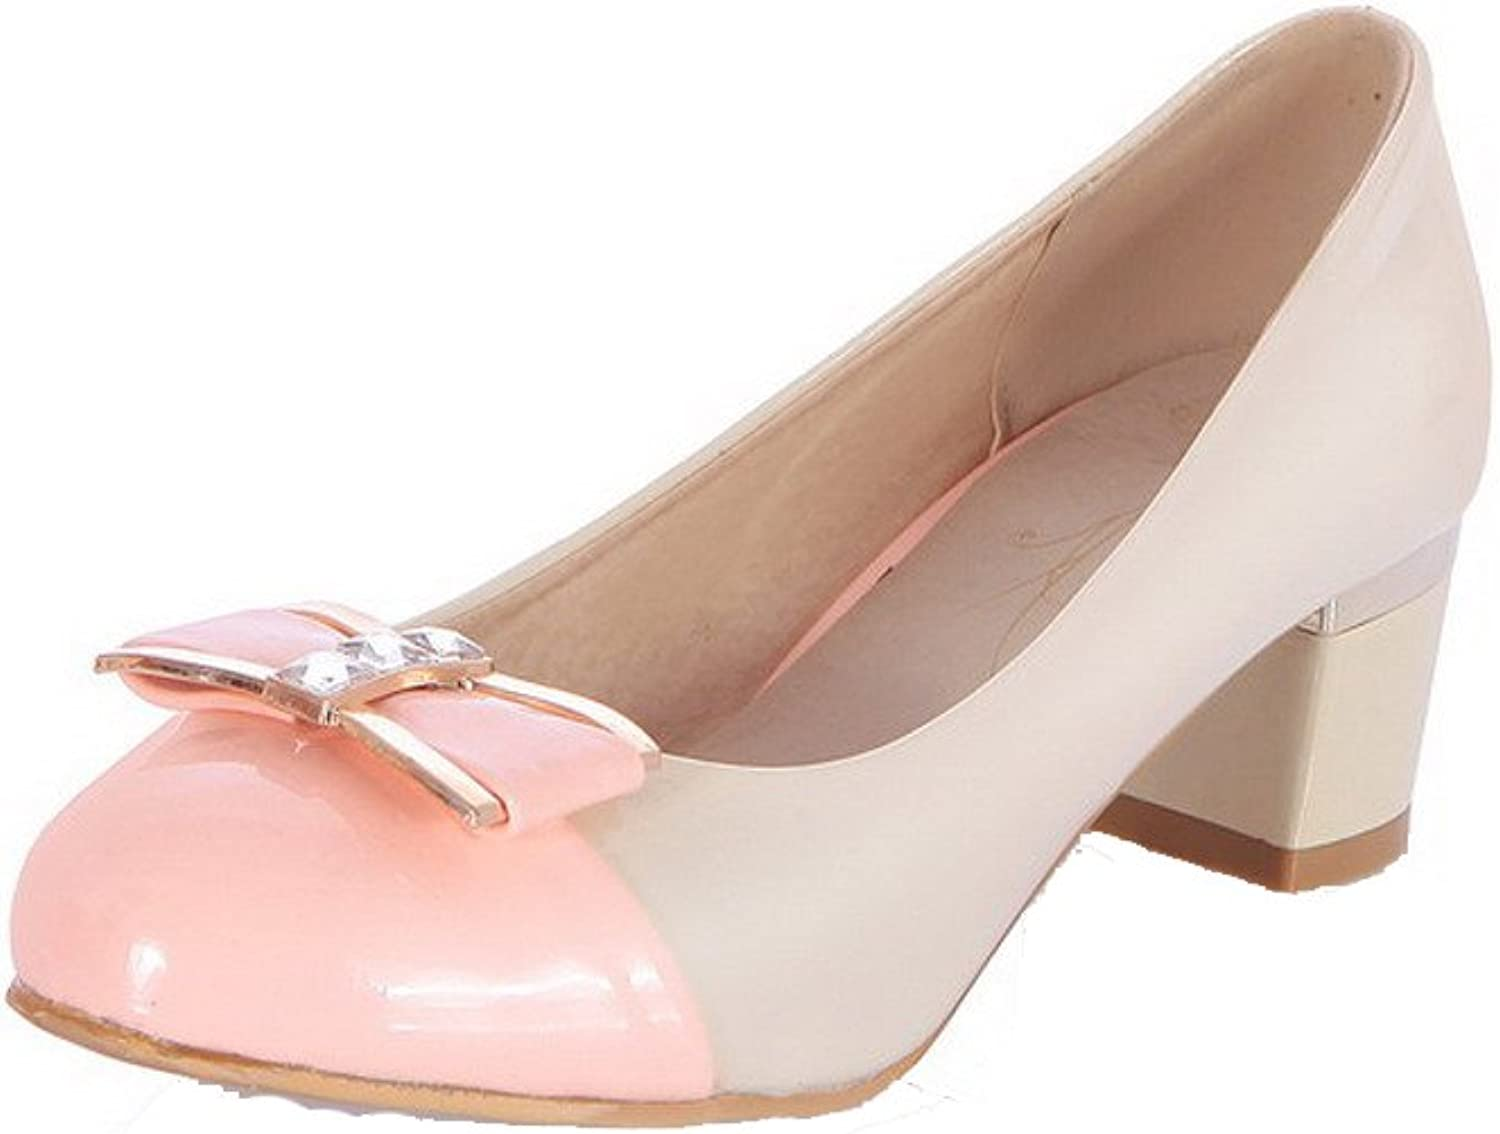 AmoonyFashion Women's Pull On Round Closed Toe Kitten-Heels Assorted color Pumps-shoes